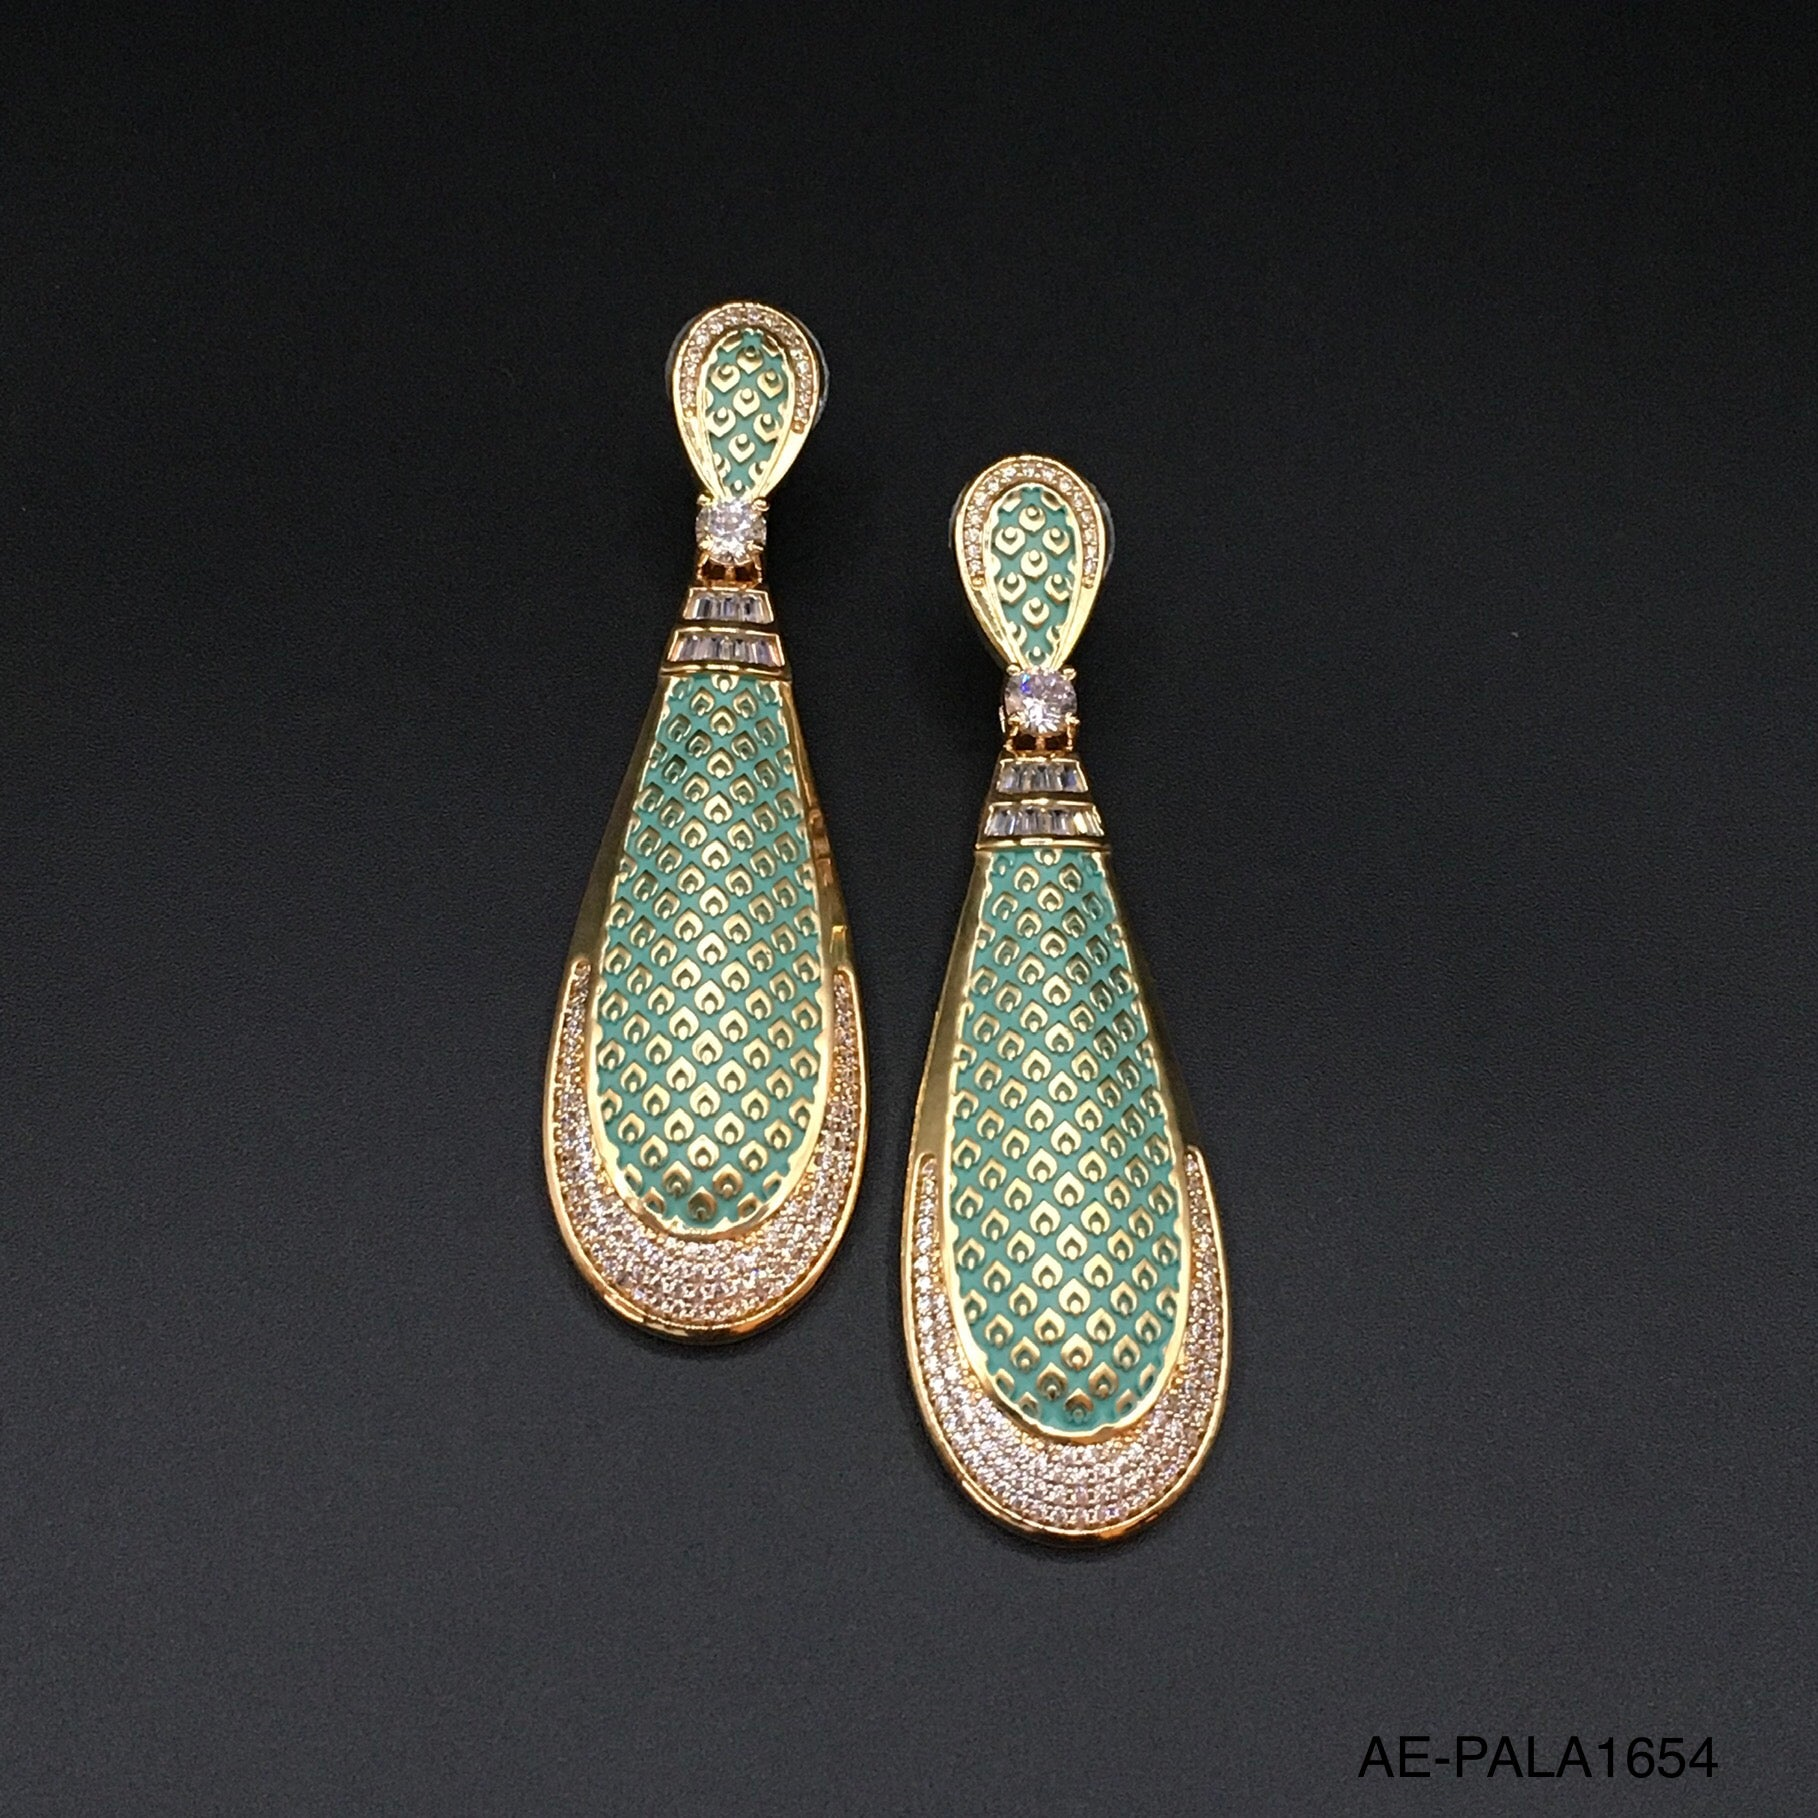 Mint Meenakari Drop Earrings with Cubic Zirconia